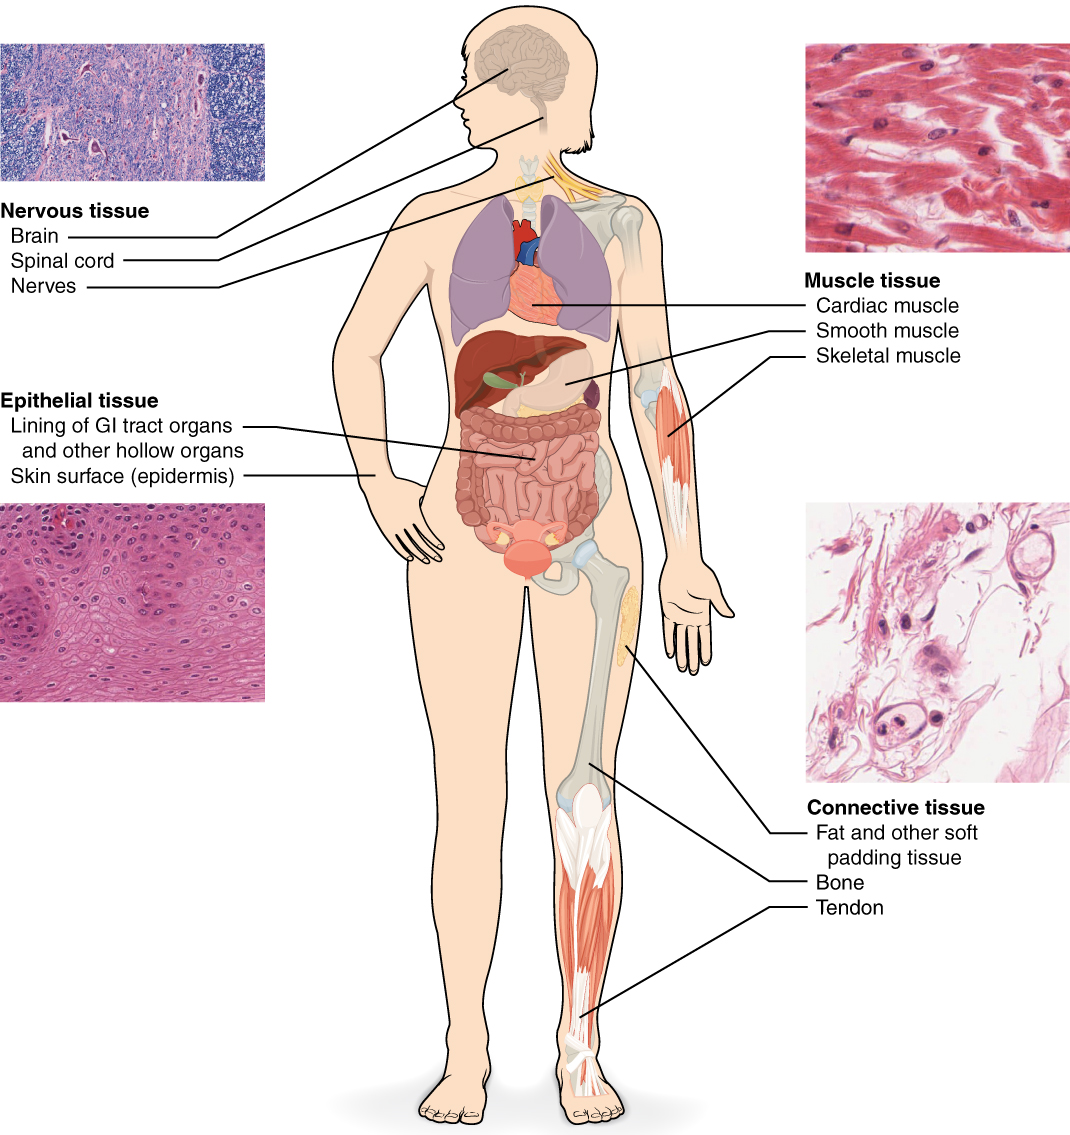 This diagram shows the silhouette of a female surrounded by four micrographs of tissue. Each micrograph has arrows pointing to the organs where that tissue is found. The upper left micrograph shows nervous tissue that is whitish with several large, purple, irregularly-shaped neurons embedded throughout. Nervous tissue is found in the brain, spinal cord and nerves. The upper right micrograph shows muscle tissue that is red with elongated cells and prominent, purple nuclei. Cardiac muscle is found in the heart. Smooth muscle is found in muscular internal organs, such as the stomach. Skeletal muscle is found in parts that are moved voluntarily, such as the arms. The lower left micrograph shows epithelial tissue. This tissue is purple with many round, purple cells with dark purple nuclei. Epithelial tissue is found in the lining of GI tract organs and other hollow organs such as the small intestine. Epithelial tissue also composes the outer layer of the skin, known as the epidermis. Finally, the lower right micrograph shows connective tissue, which is composed of very loosely packed purple cells and fibers. There are large open spaces between clumps of cells and fibers. Connective tissue is found in the leg within fat and other soft padding tissue as well as bones and tendons.